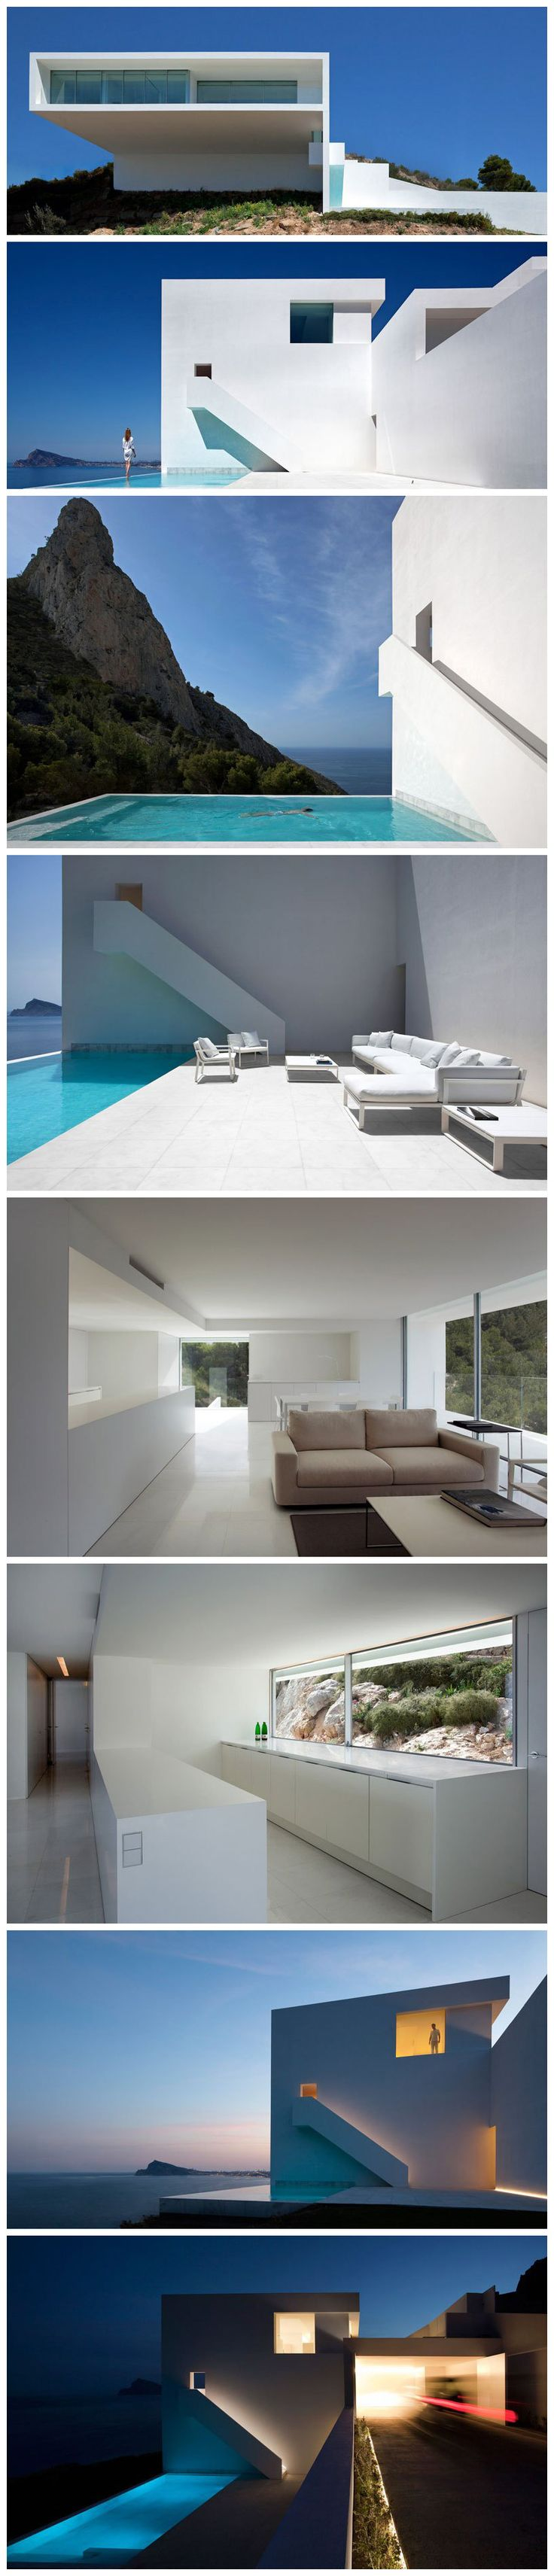 A Cliffside Home in Calpe, Alicante, Spain.  Designed by Fran Silvestre Arquitectos.  Photos by Diego Opazo.  Source: http://twistedsifter.com